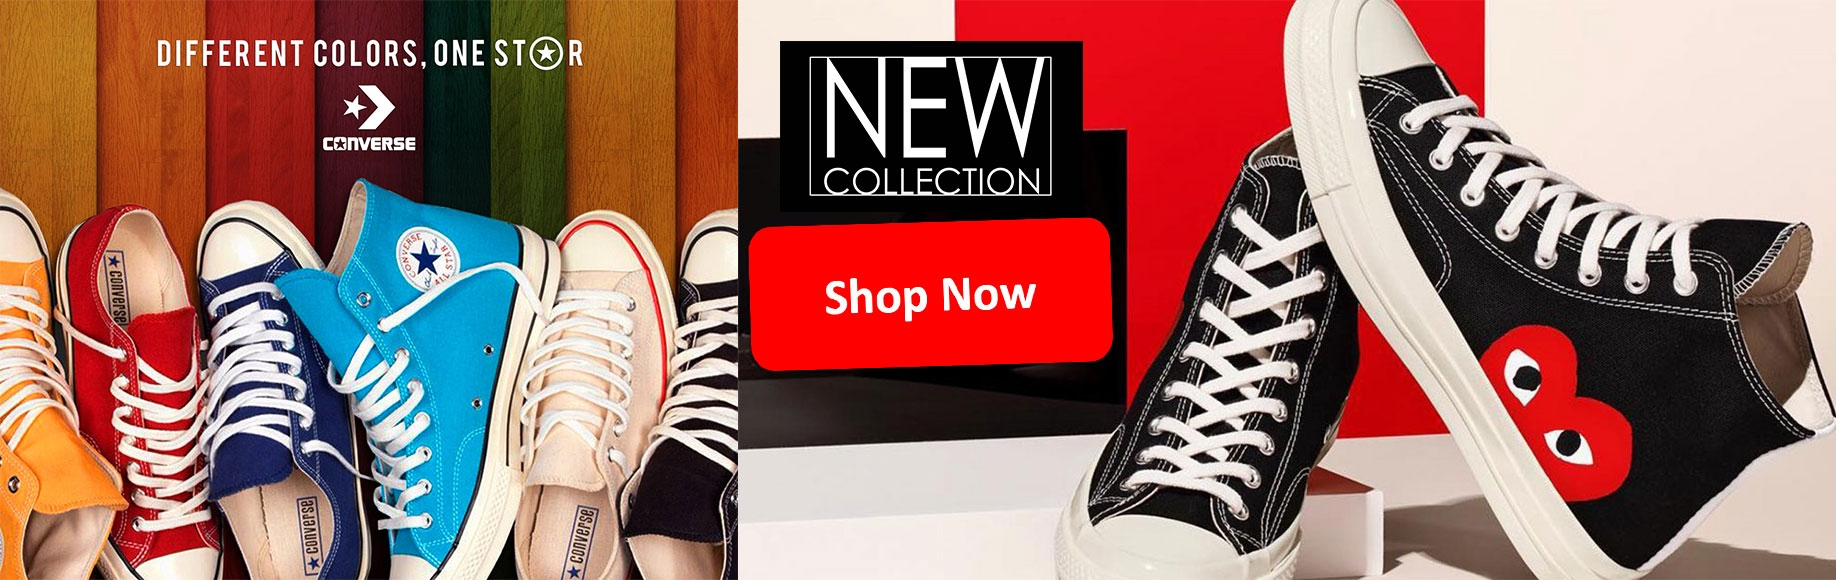 New  Collection Spring 2019 - Converse